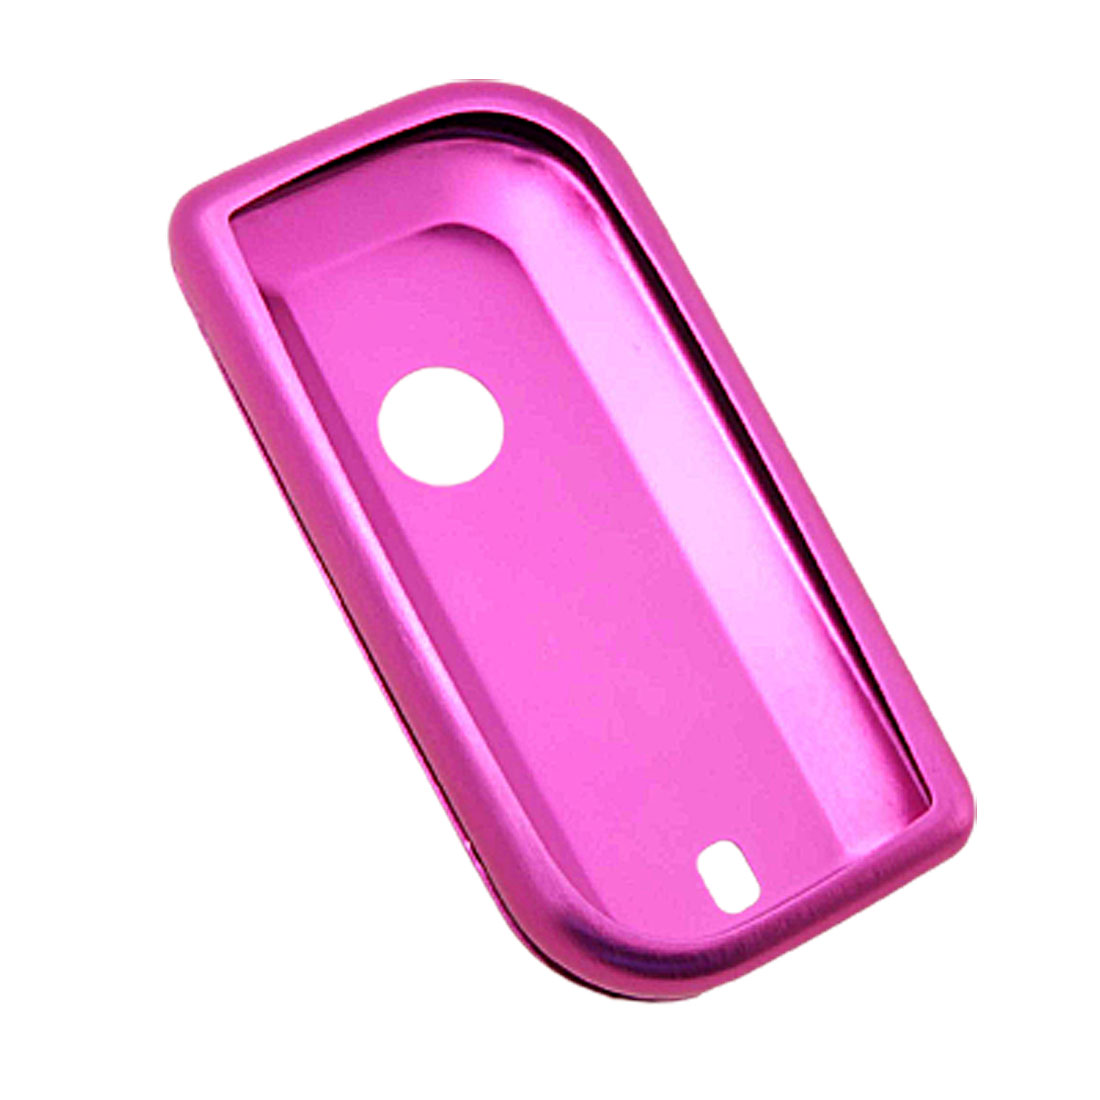 Fashionable Purple Super Slim Aluminum Protector Hard Case for Nokia 7610